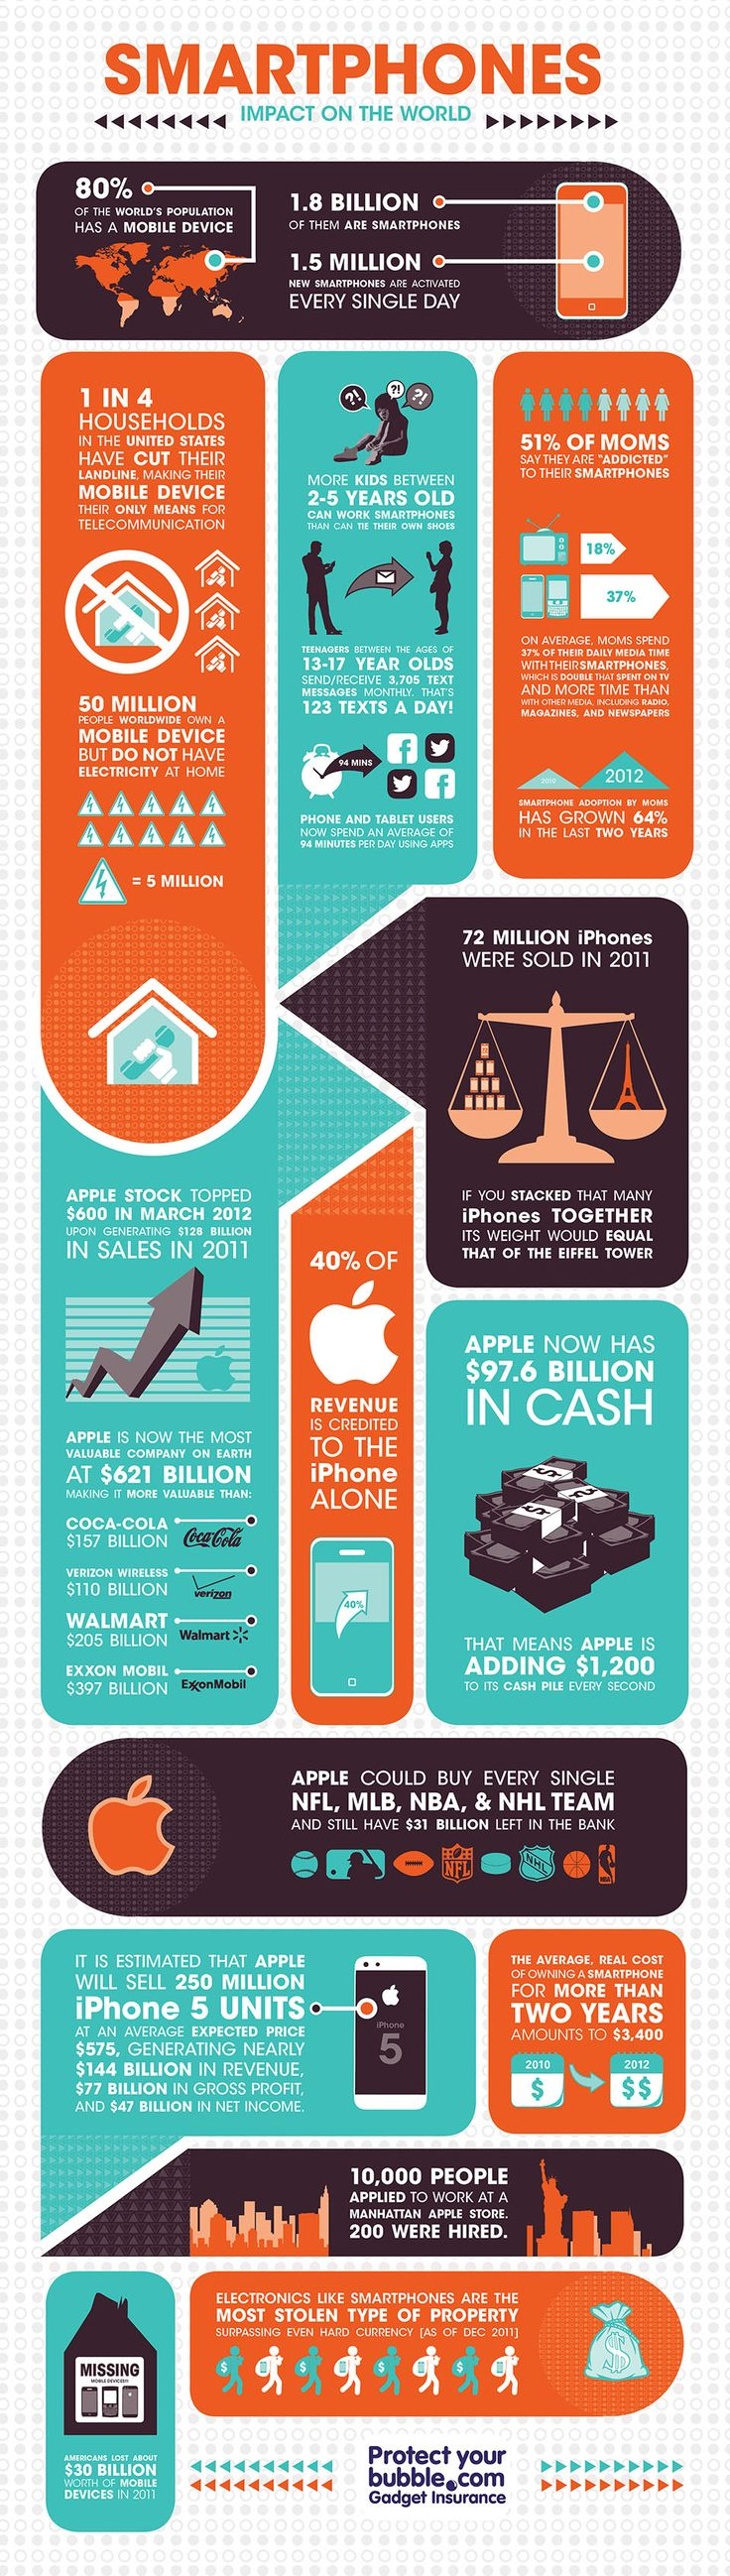 Smartphones impact on the world #flowchart #infographic